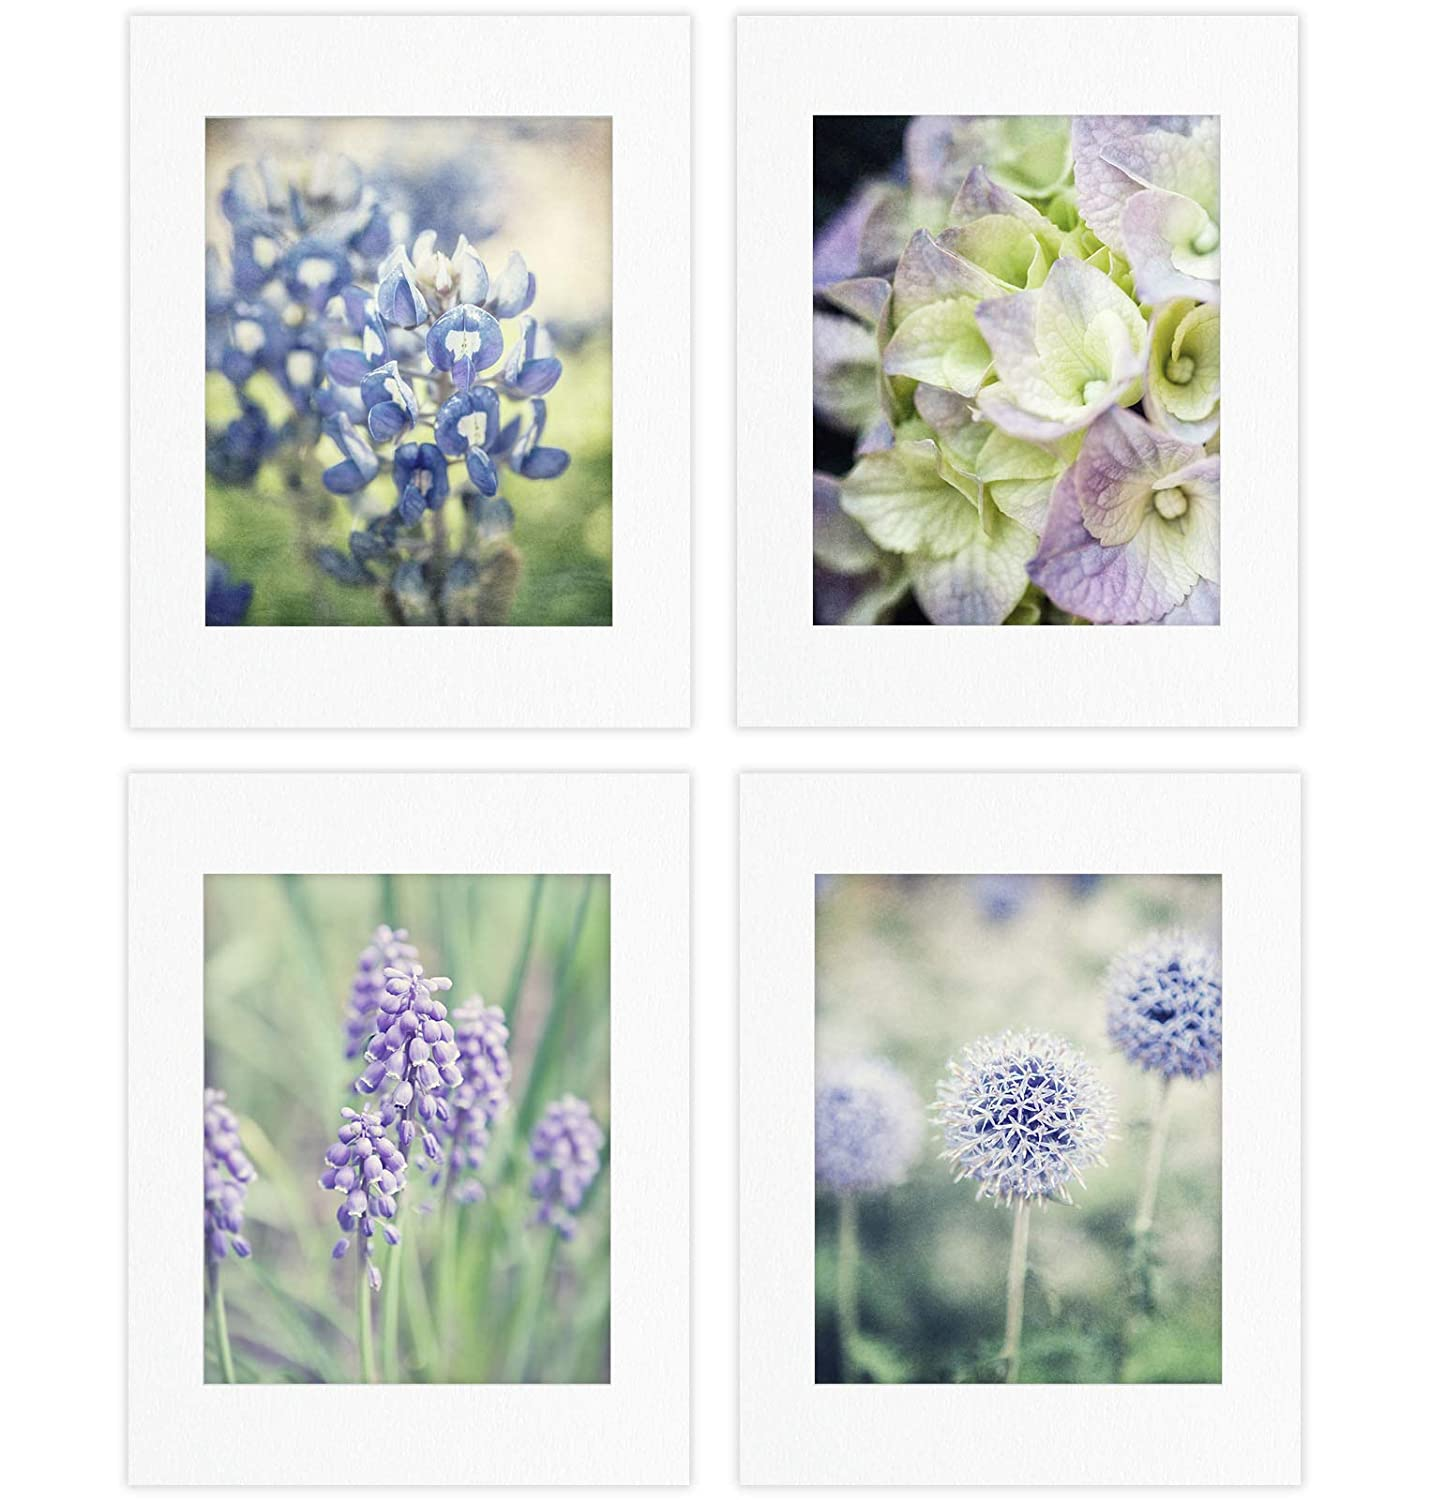 Shabby Chic Set of 4 Floral Photography Prints (Not Framed). Blue and Purple Flower Pictures for Home Decor. 8x10, 11x14 or 16x20. (4 5x7 Prints with 8x10 Mats)